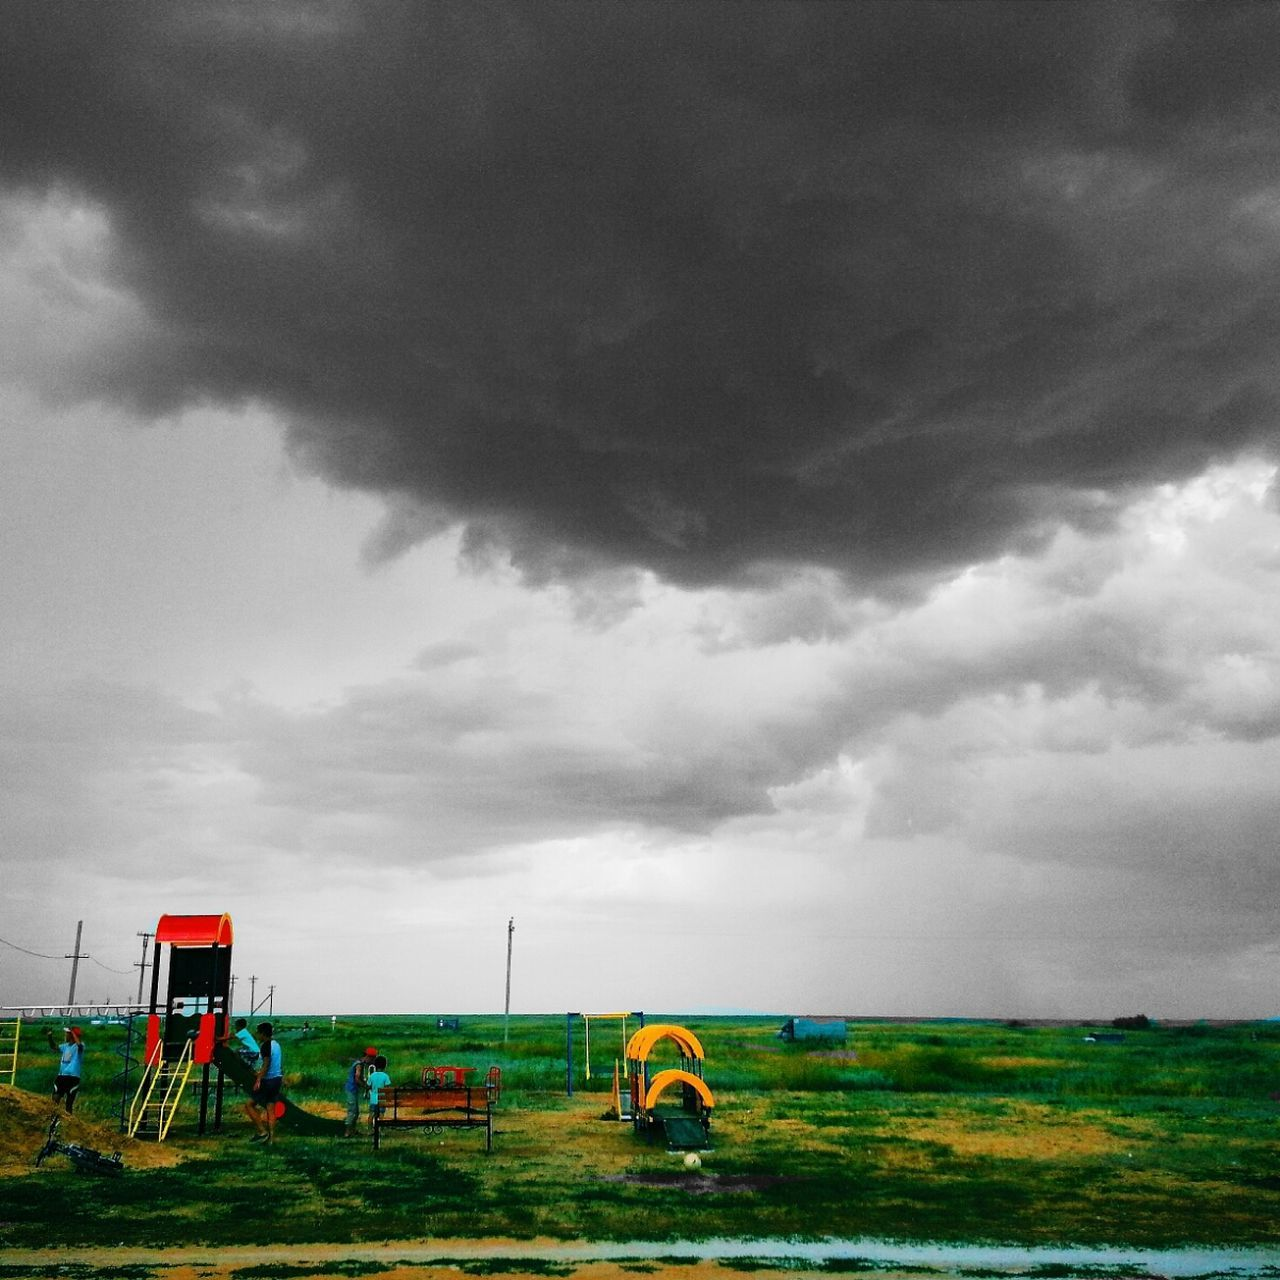 sky, cloud - sky, land vehicle, field, transportation, mode of transport, grass, nature, car, day, outdoors, no people, beauty in nature, oil pump